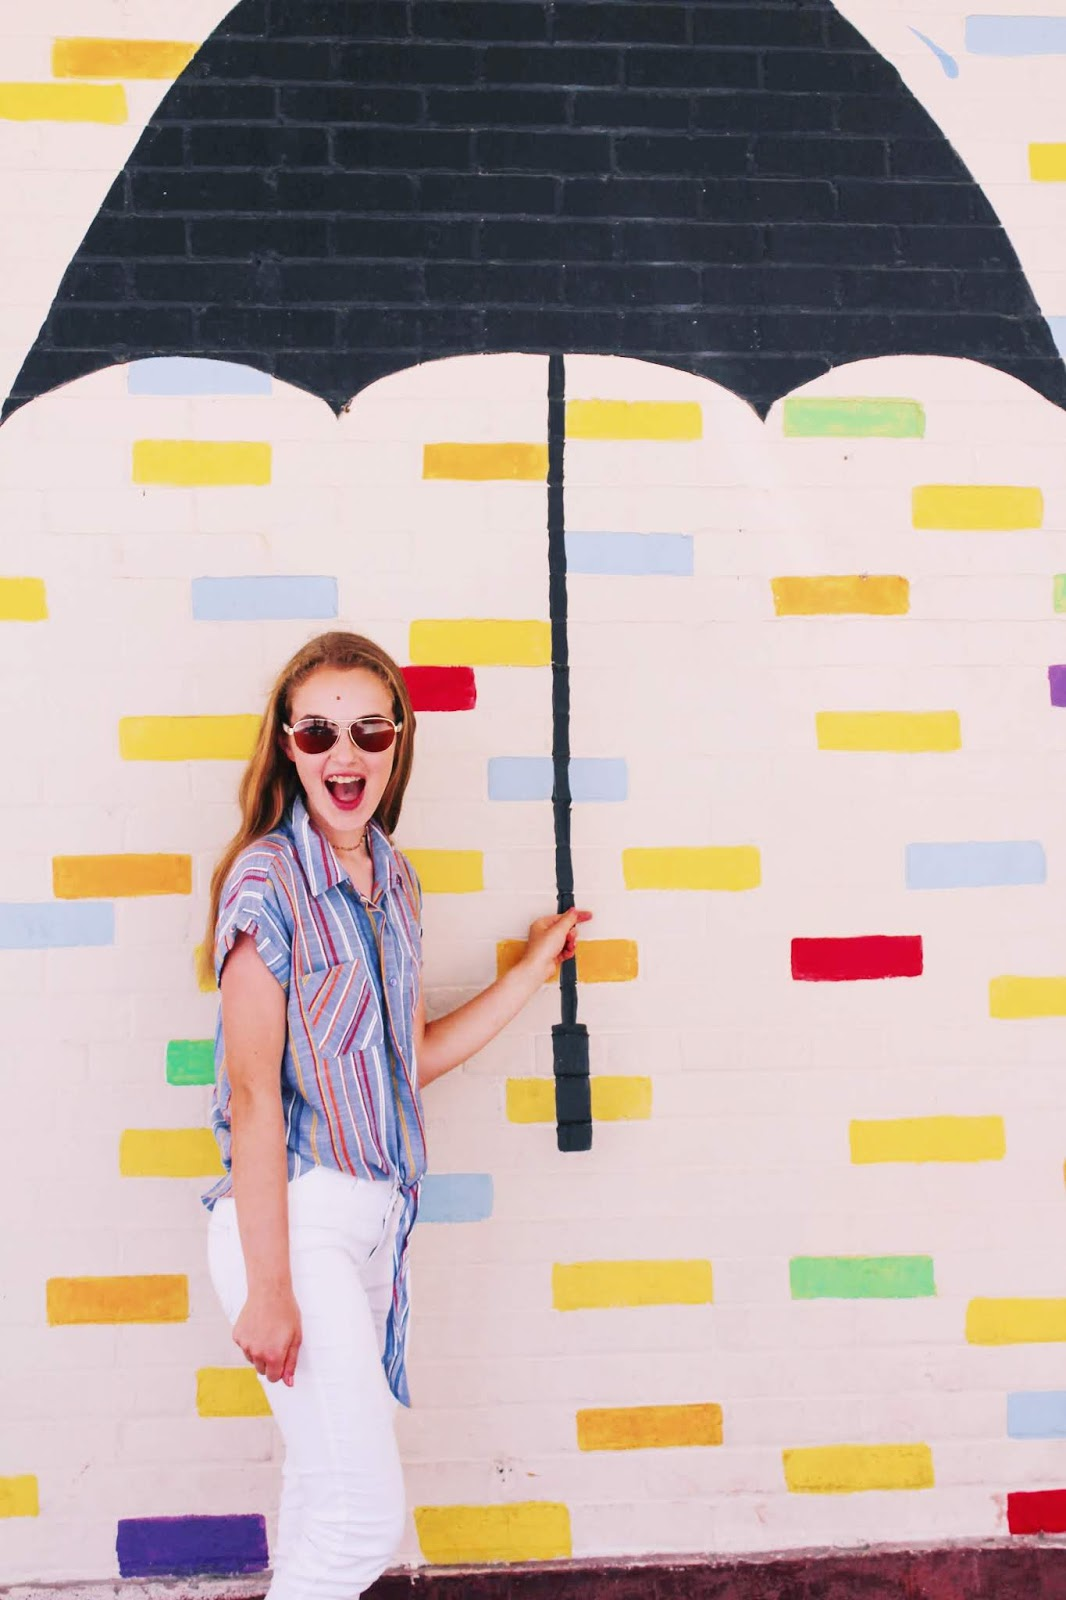 Galveston Travel Guide // The Strand Galveston umbrella mural striped top